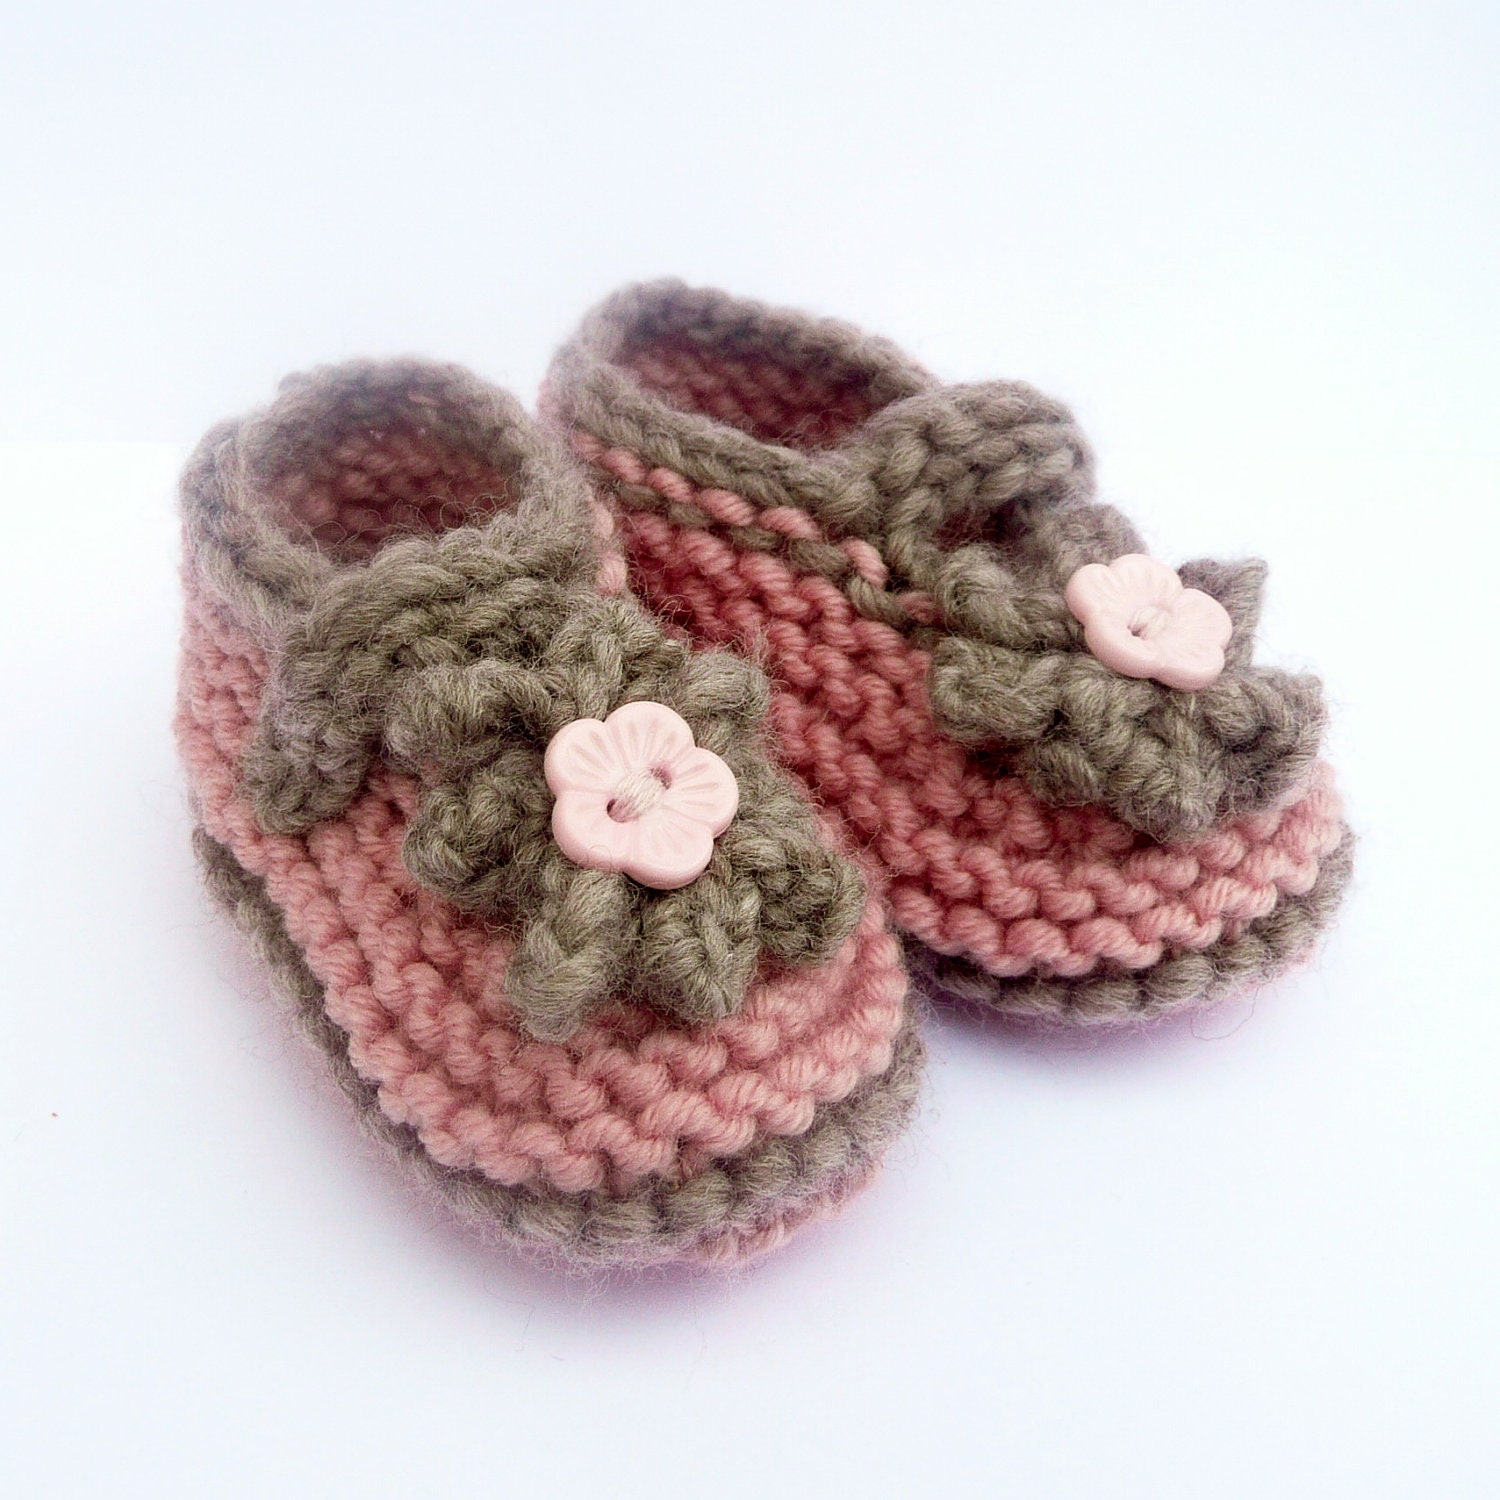 Baby Knitting Pattern Baby Shoe Pattern Seamless Cute